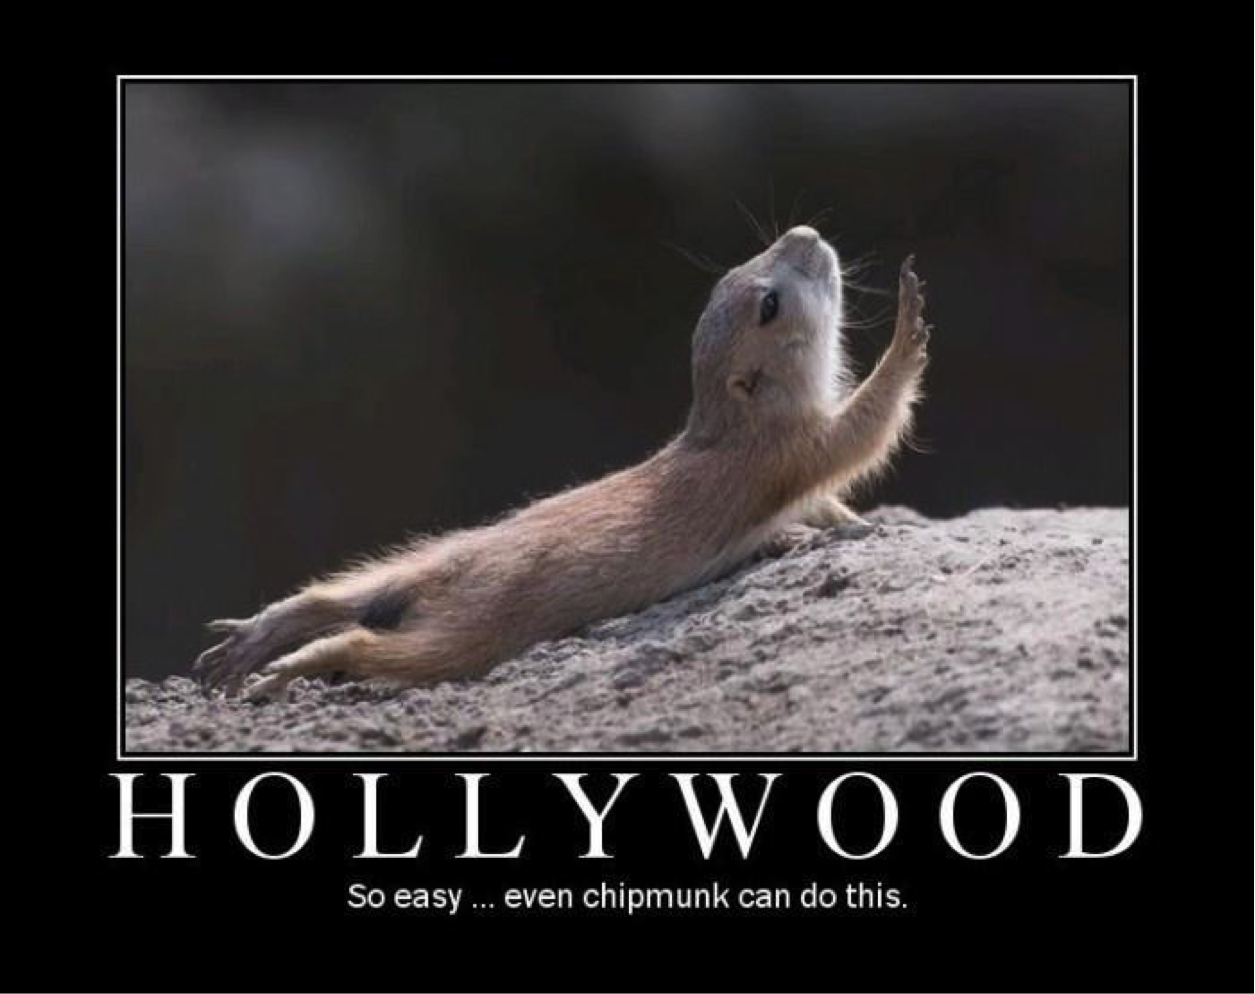 The Best Collection of Funny Hollywood Memes - Young Entertainment